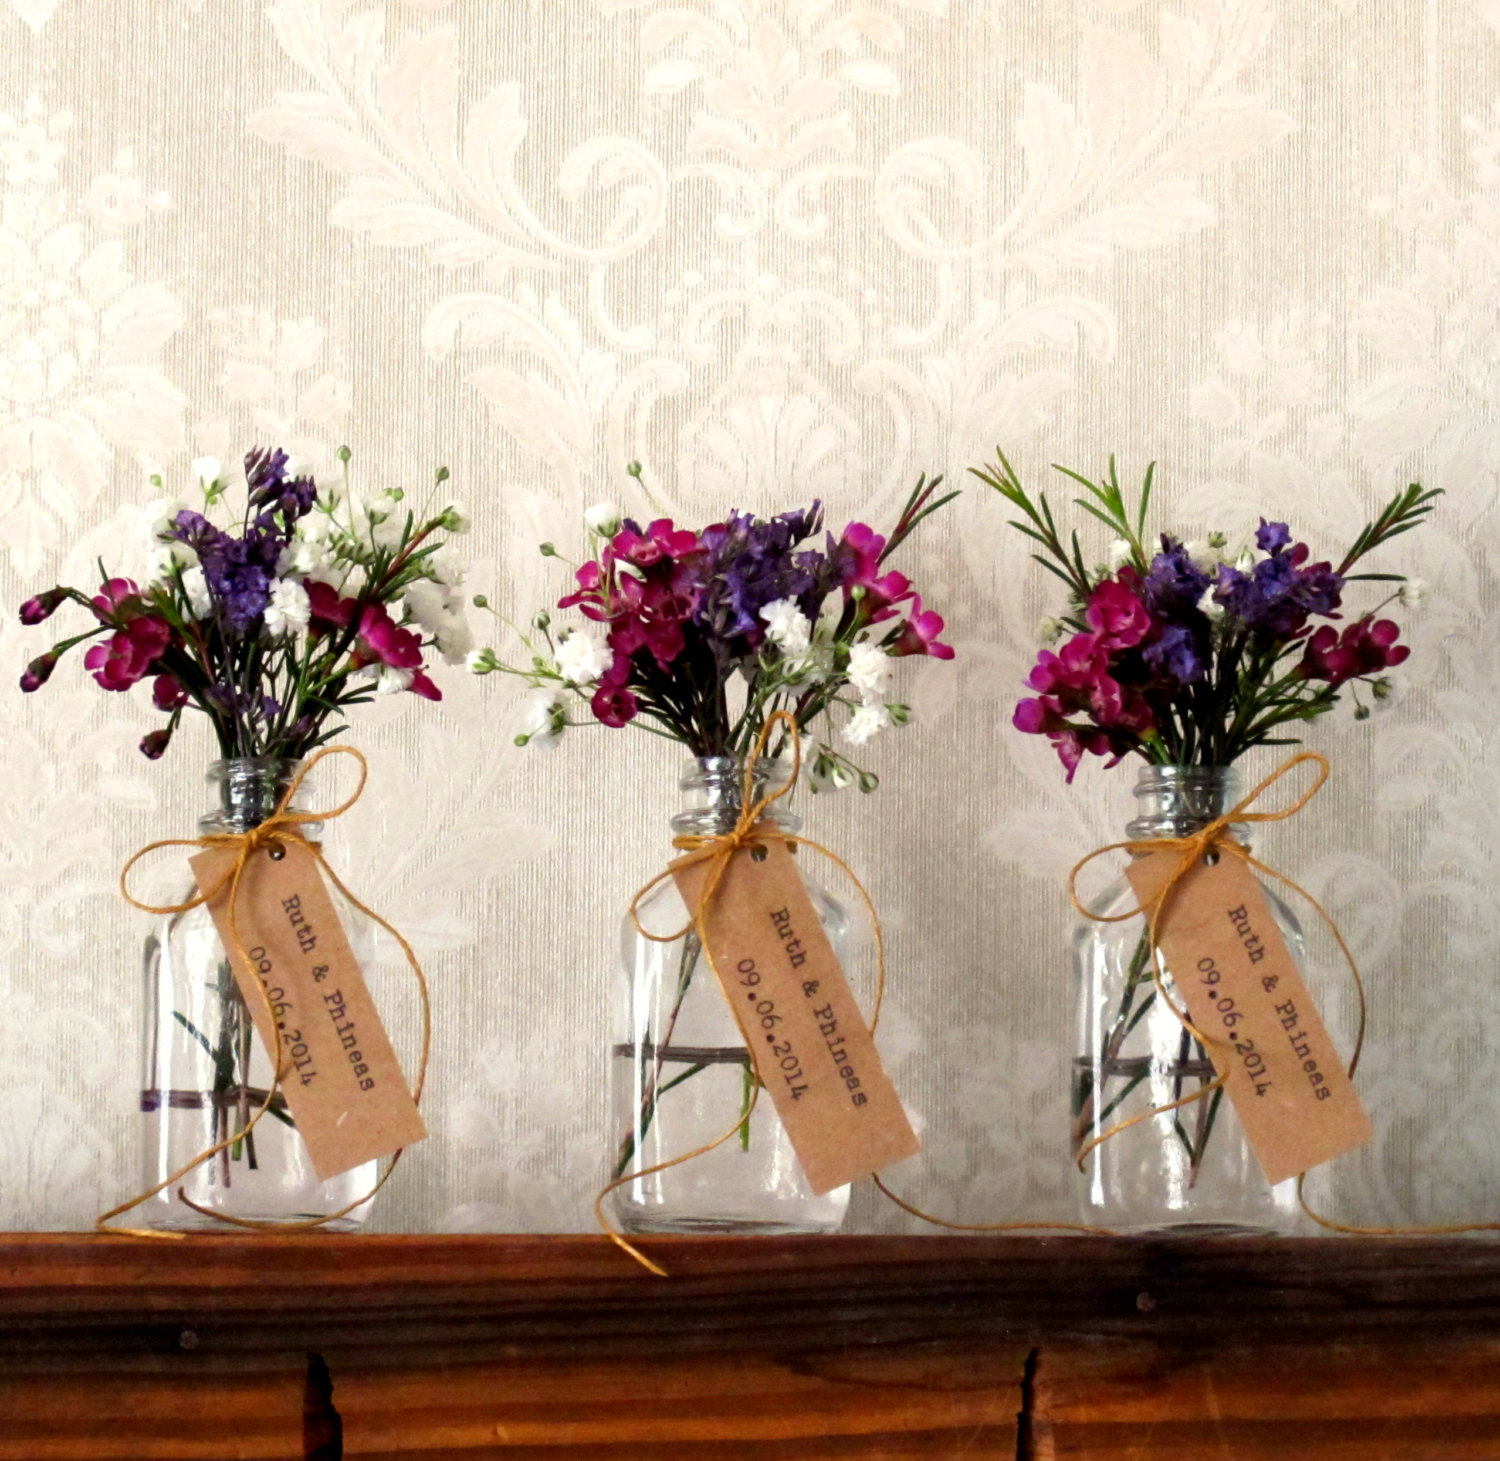 flower vase favors in jars